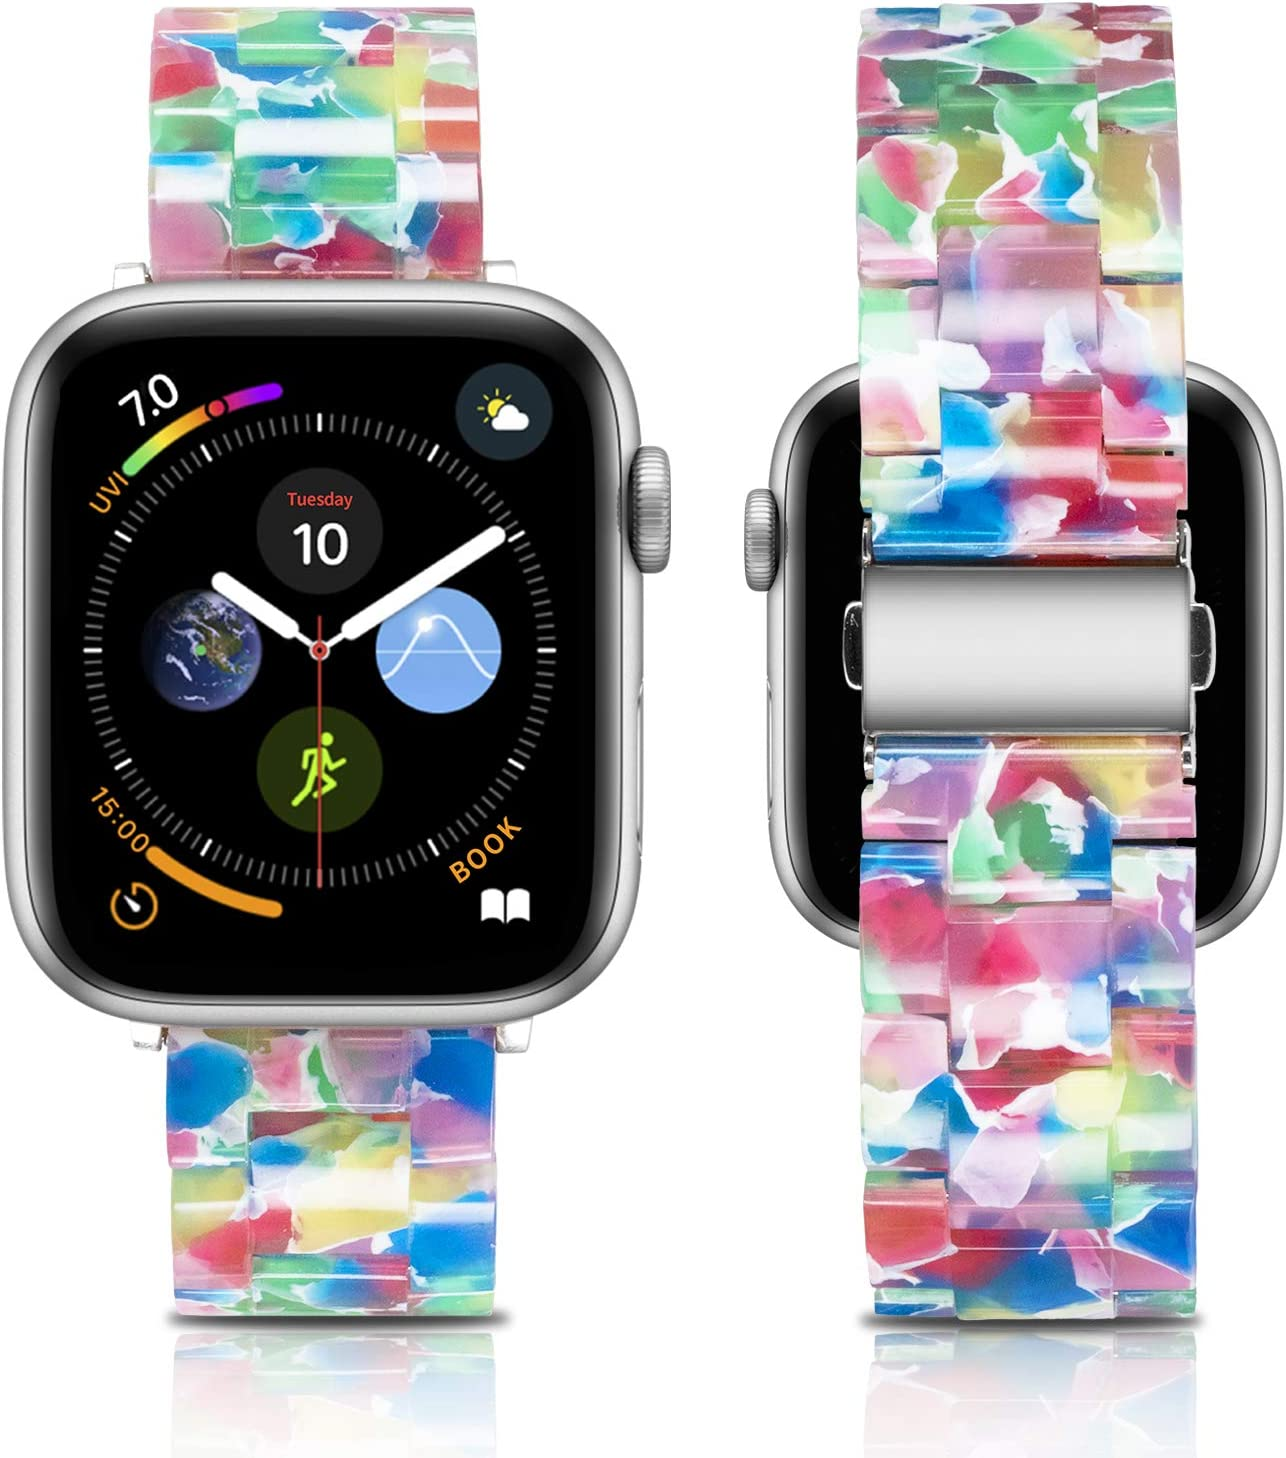 Caunedy Compatible with Apple Watch Band 38mm/40mm-Light and Waterproof Fashion Replacement Resin Band with Stainless Steel Buckle for Series iWatch 6/5/4/3/2/1/SE (Coloured Glaze, 38/40mm)